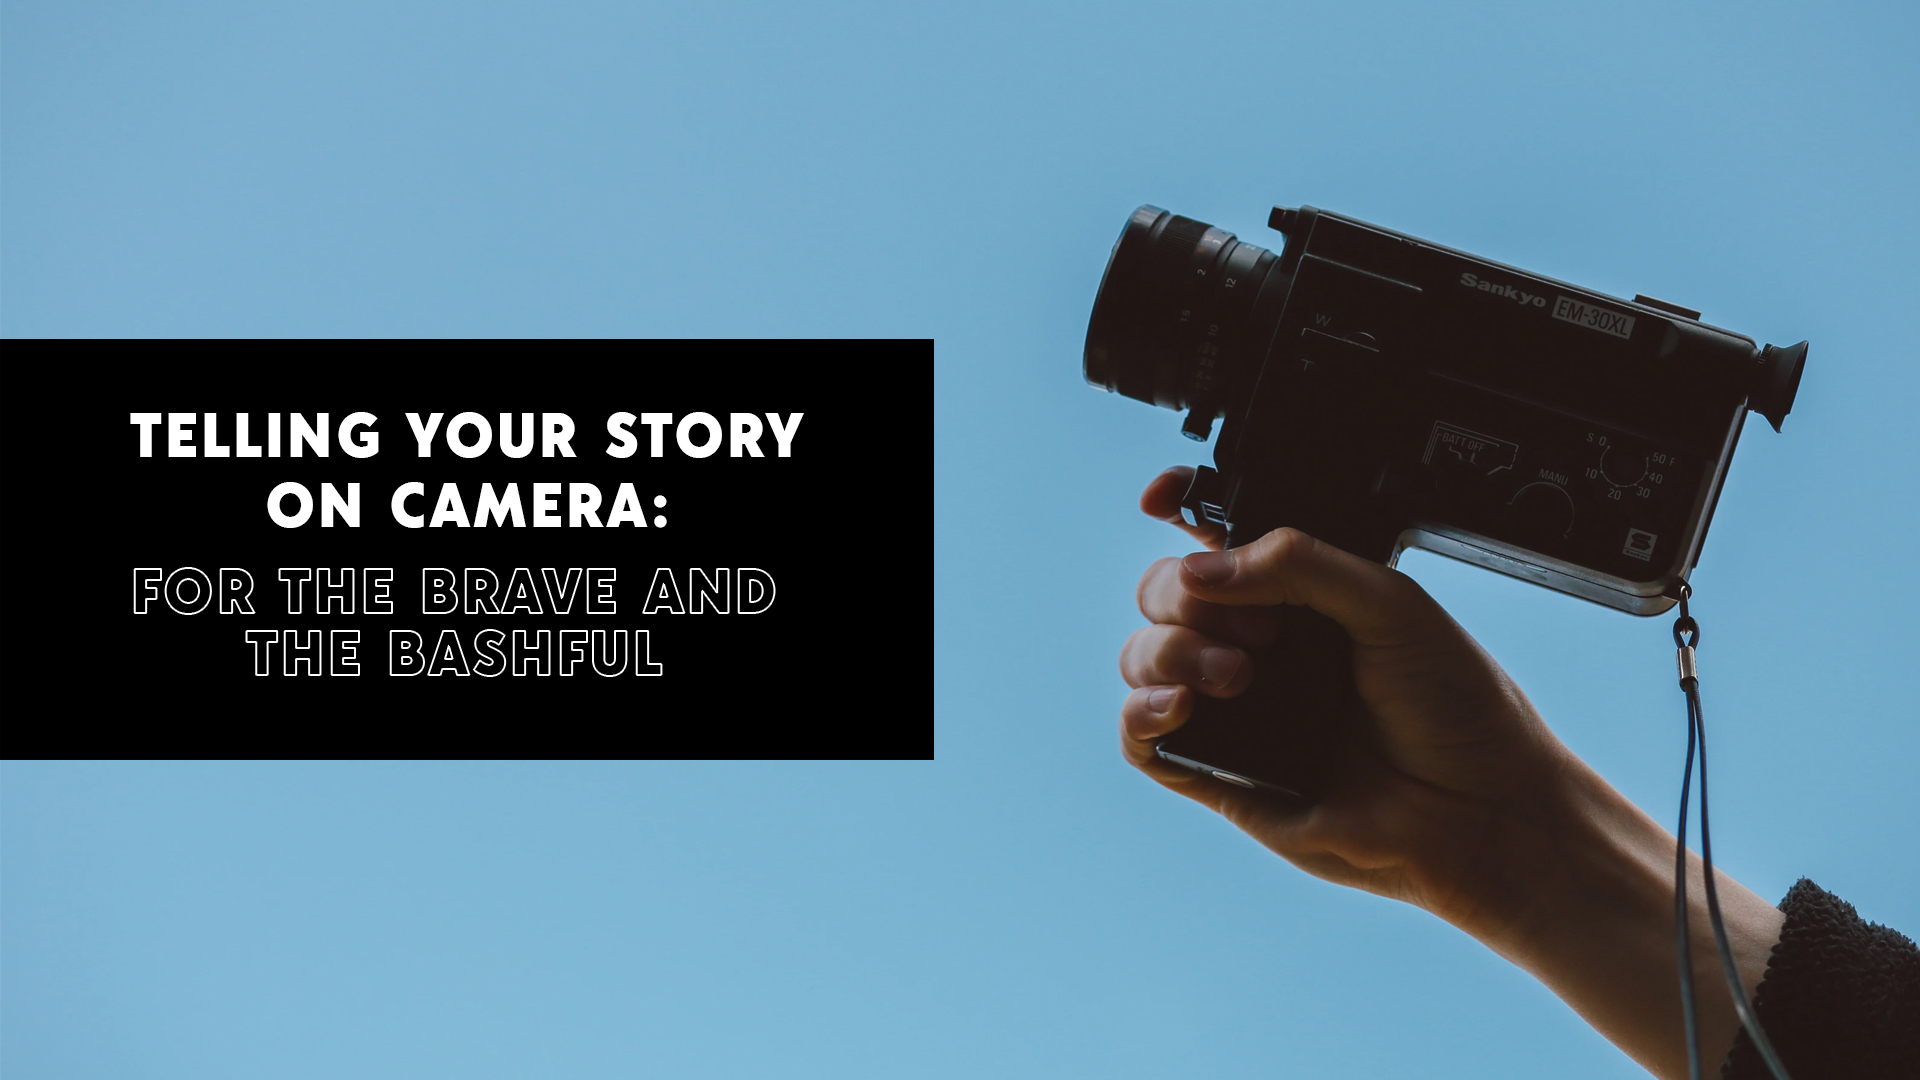 Telling Your Story on Camera: For the Brave and the Bashful